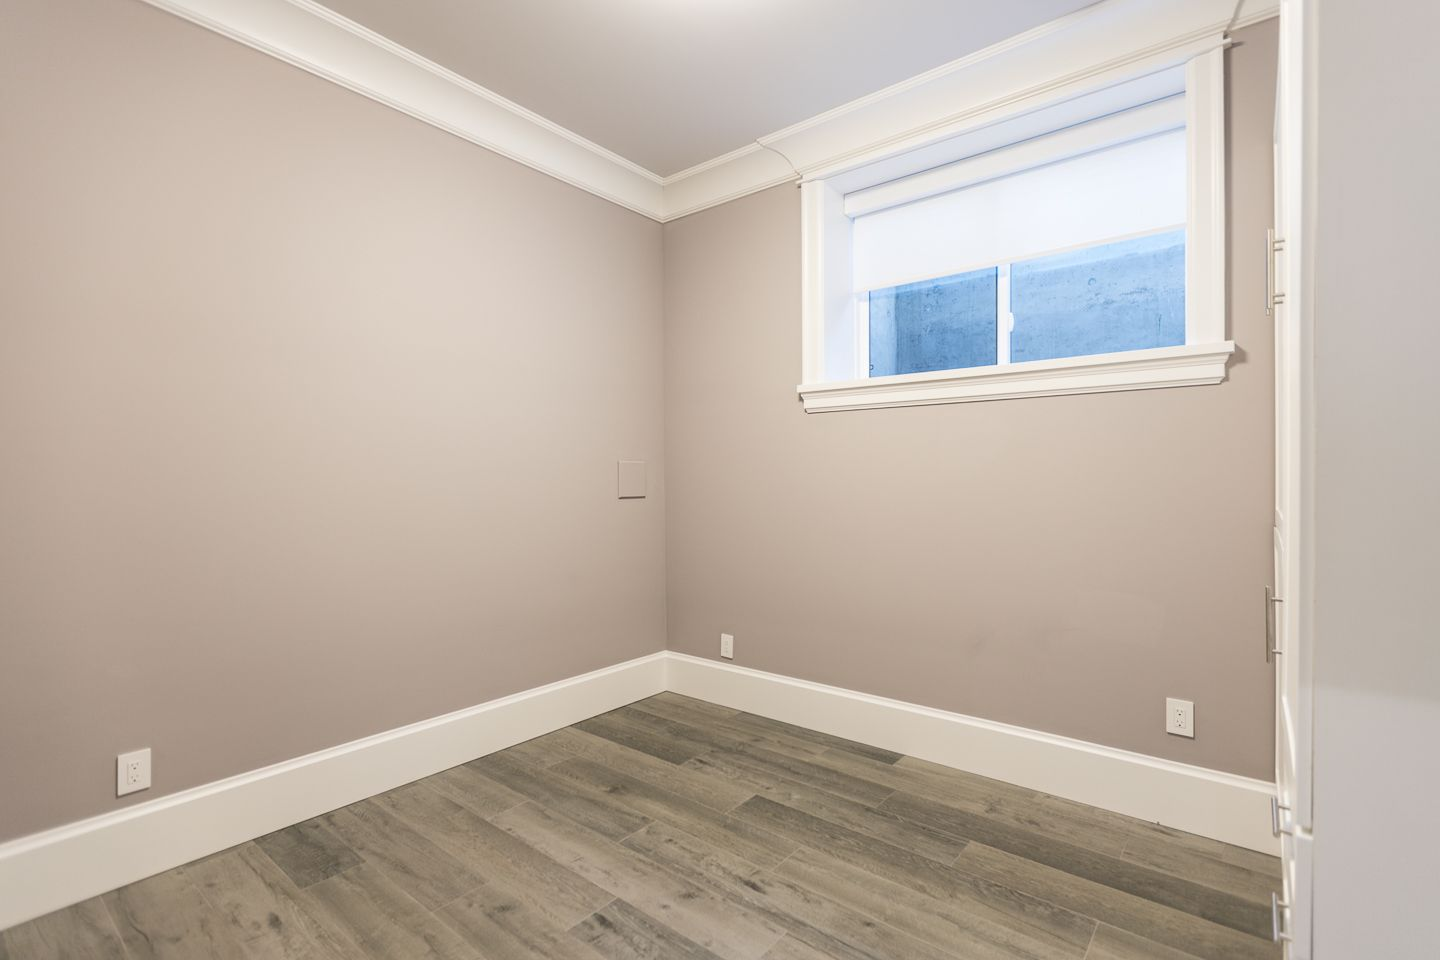 Photo 47: Photos: 1744 WEST 61ST AVE in VANCOUVER: South Granville House for sale (Vancouver West)  : MLS®# R2546980